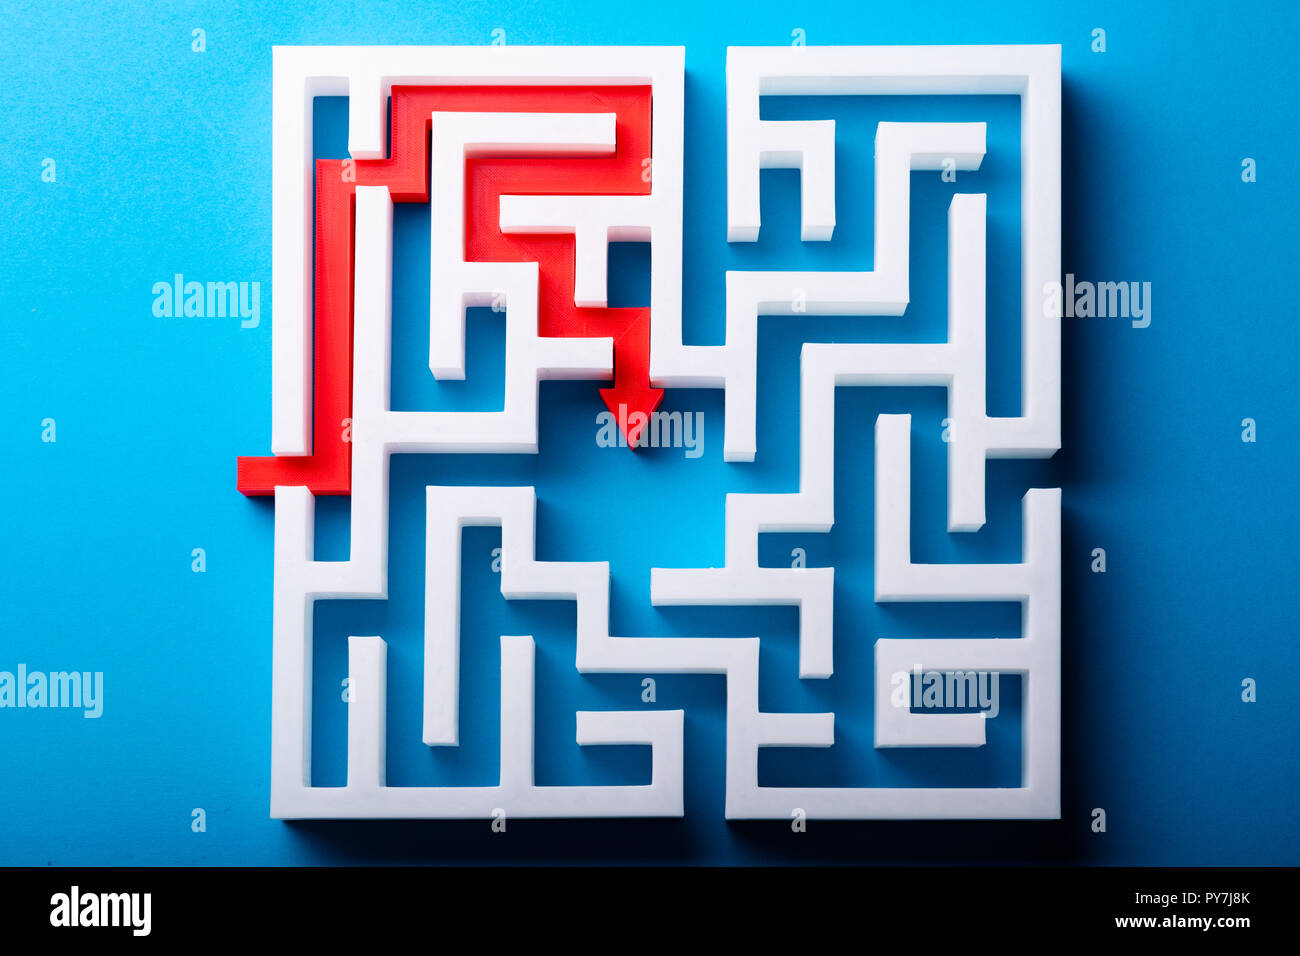 Elevated View Of Red Arrow At The Center Of White Maze On Blue Surface - Stock Image